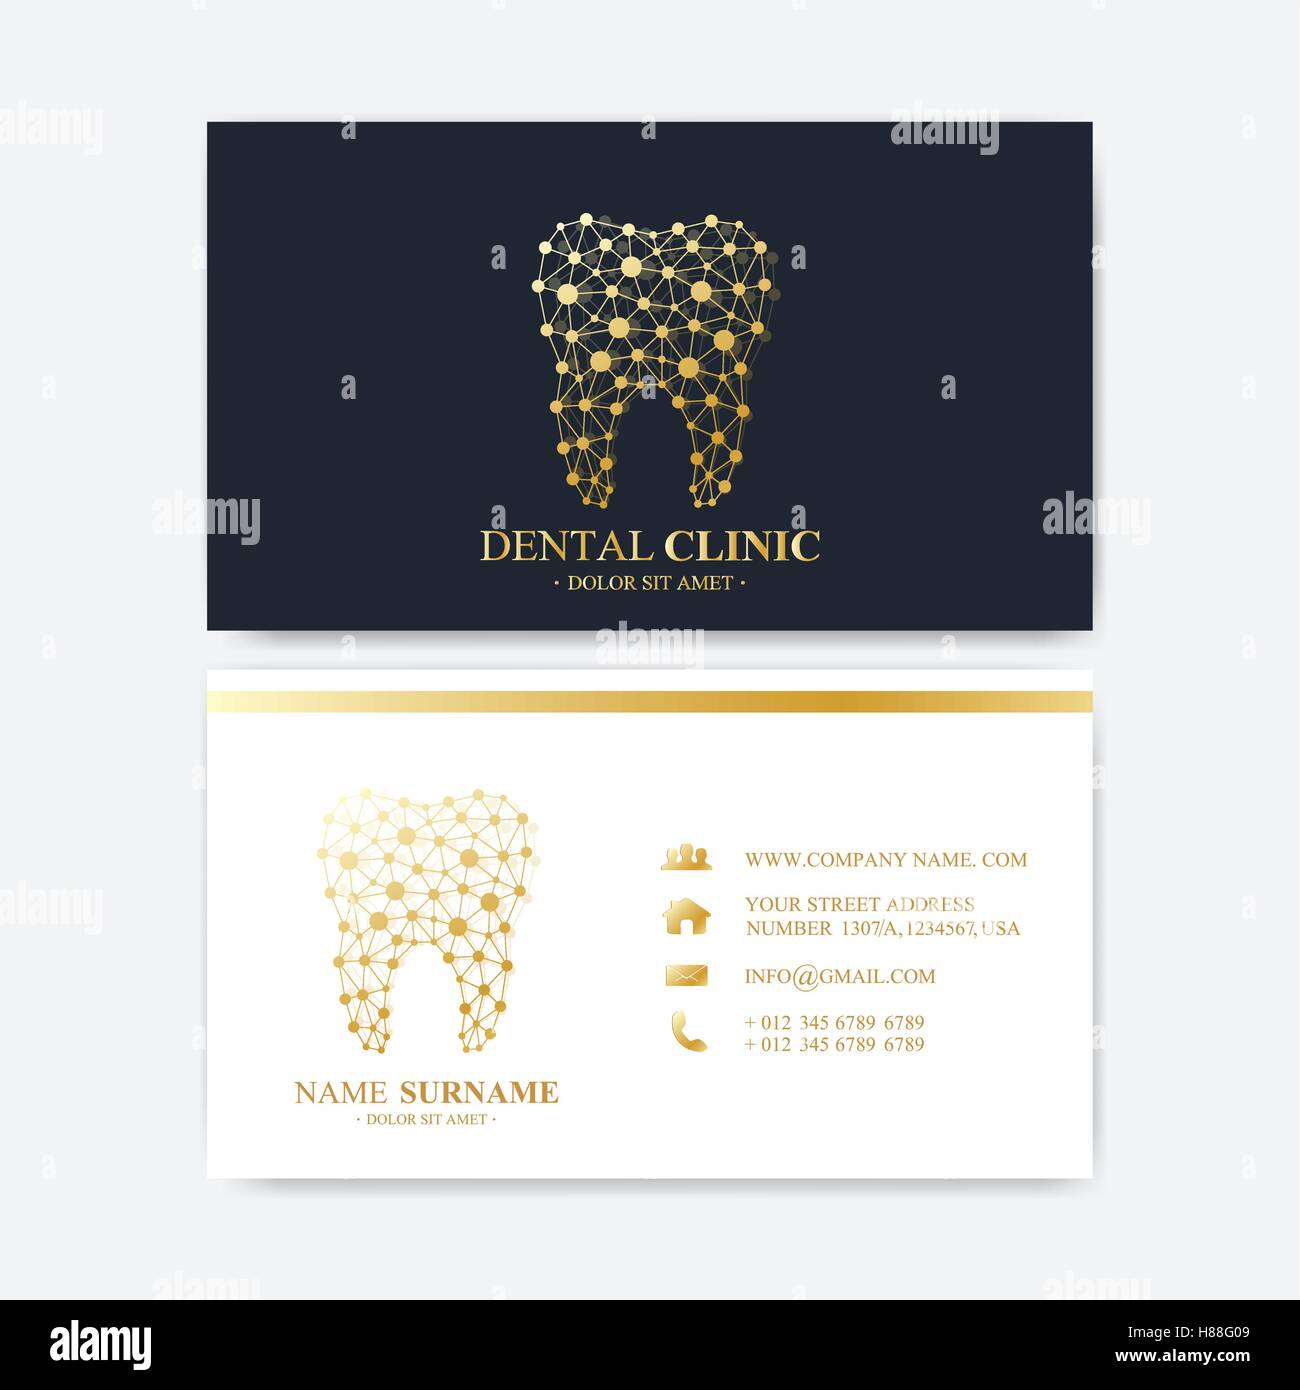 Unusual Dentist Business Card Images - Business Card Ideas ...